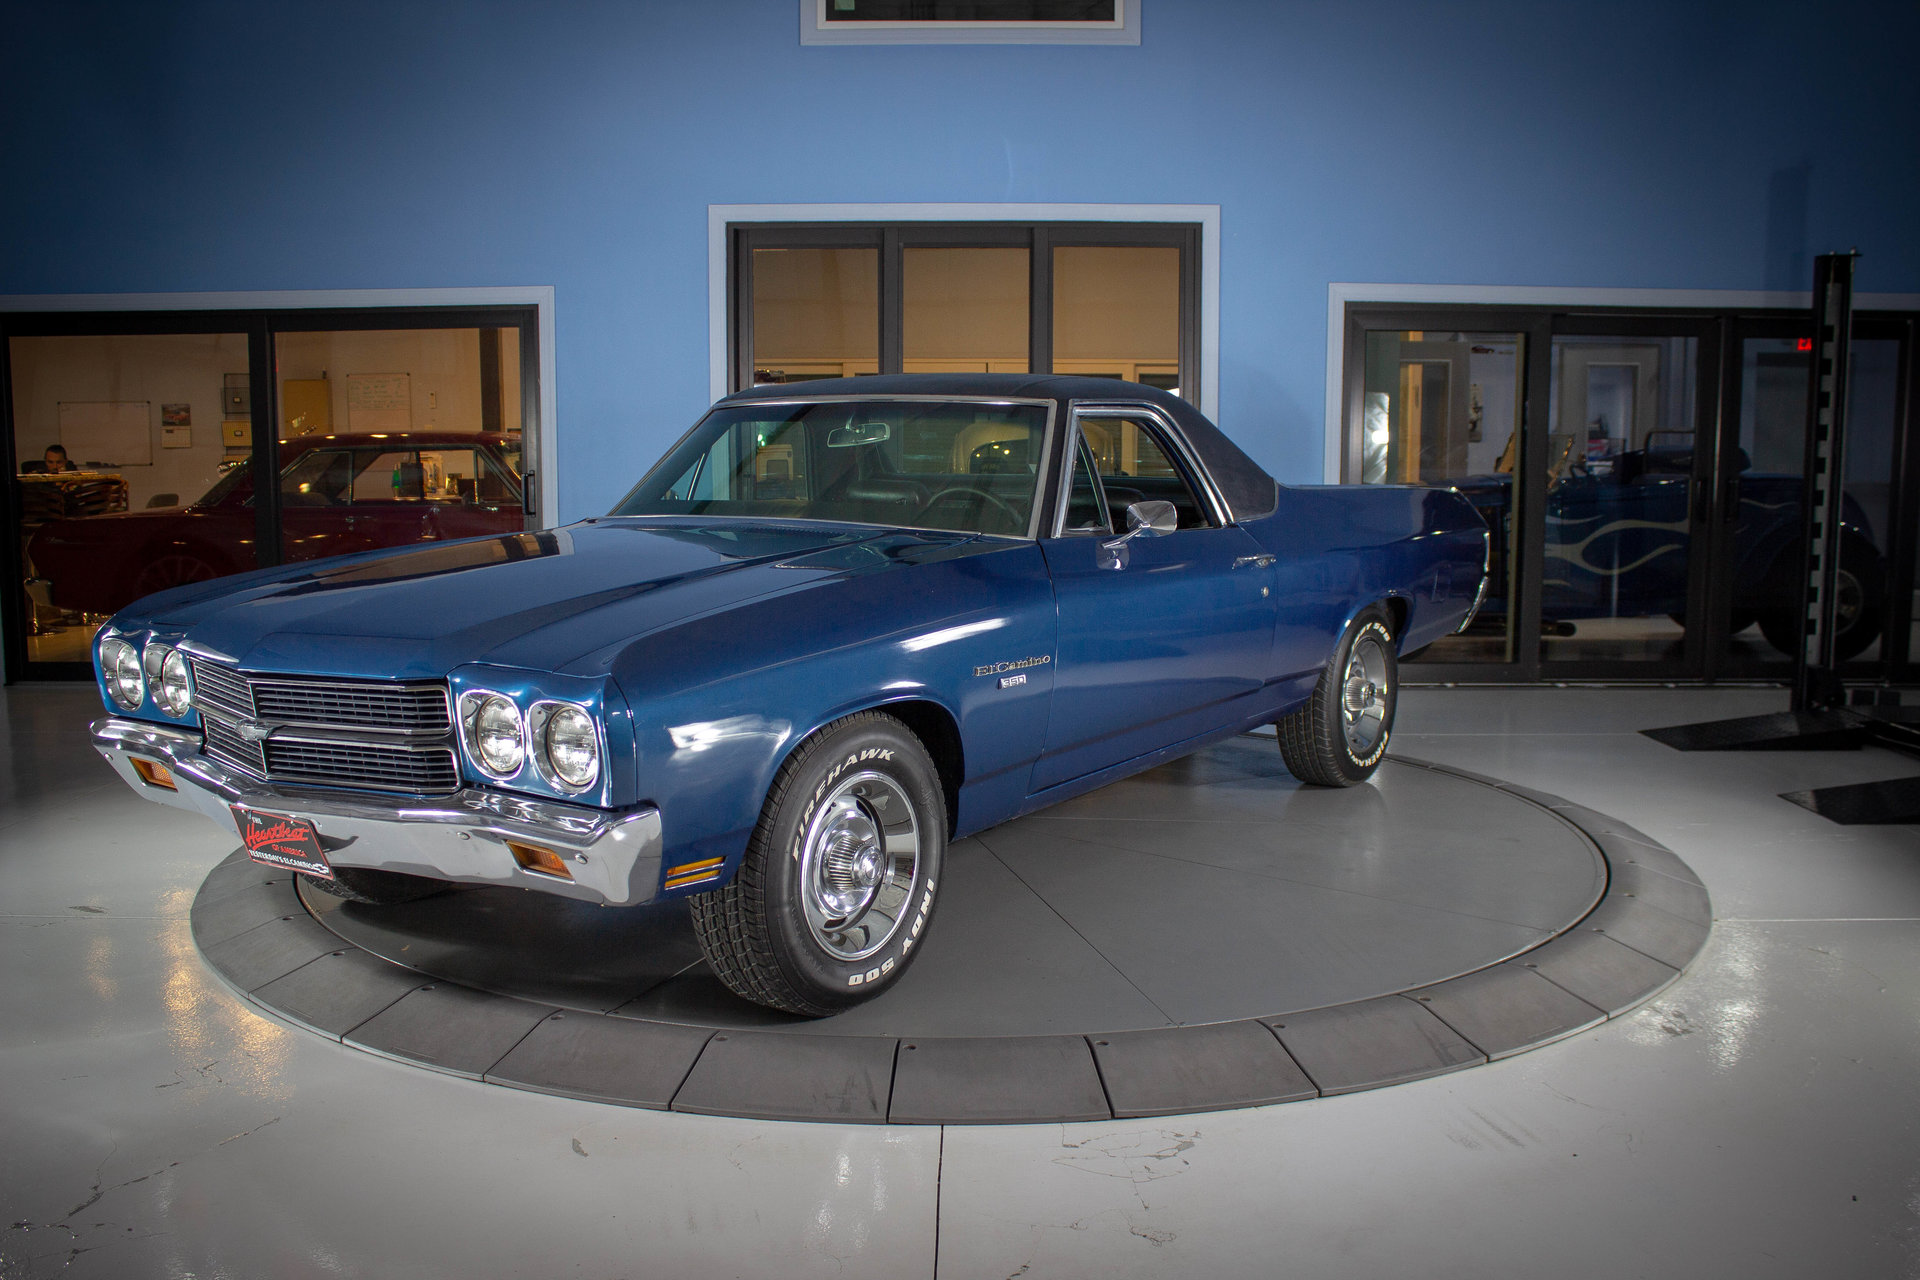 1970 chevrolet el camino classic cars used cars for sale in tampa fl. Black Bedroom Furniture Sets. Home Design Ideas